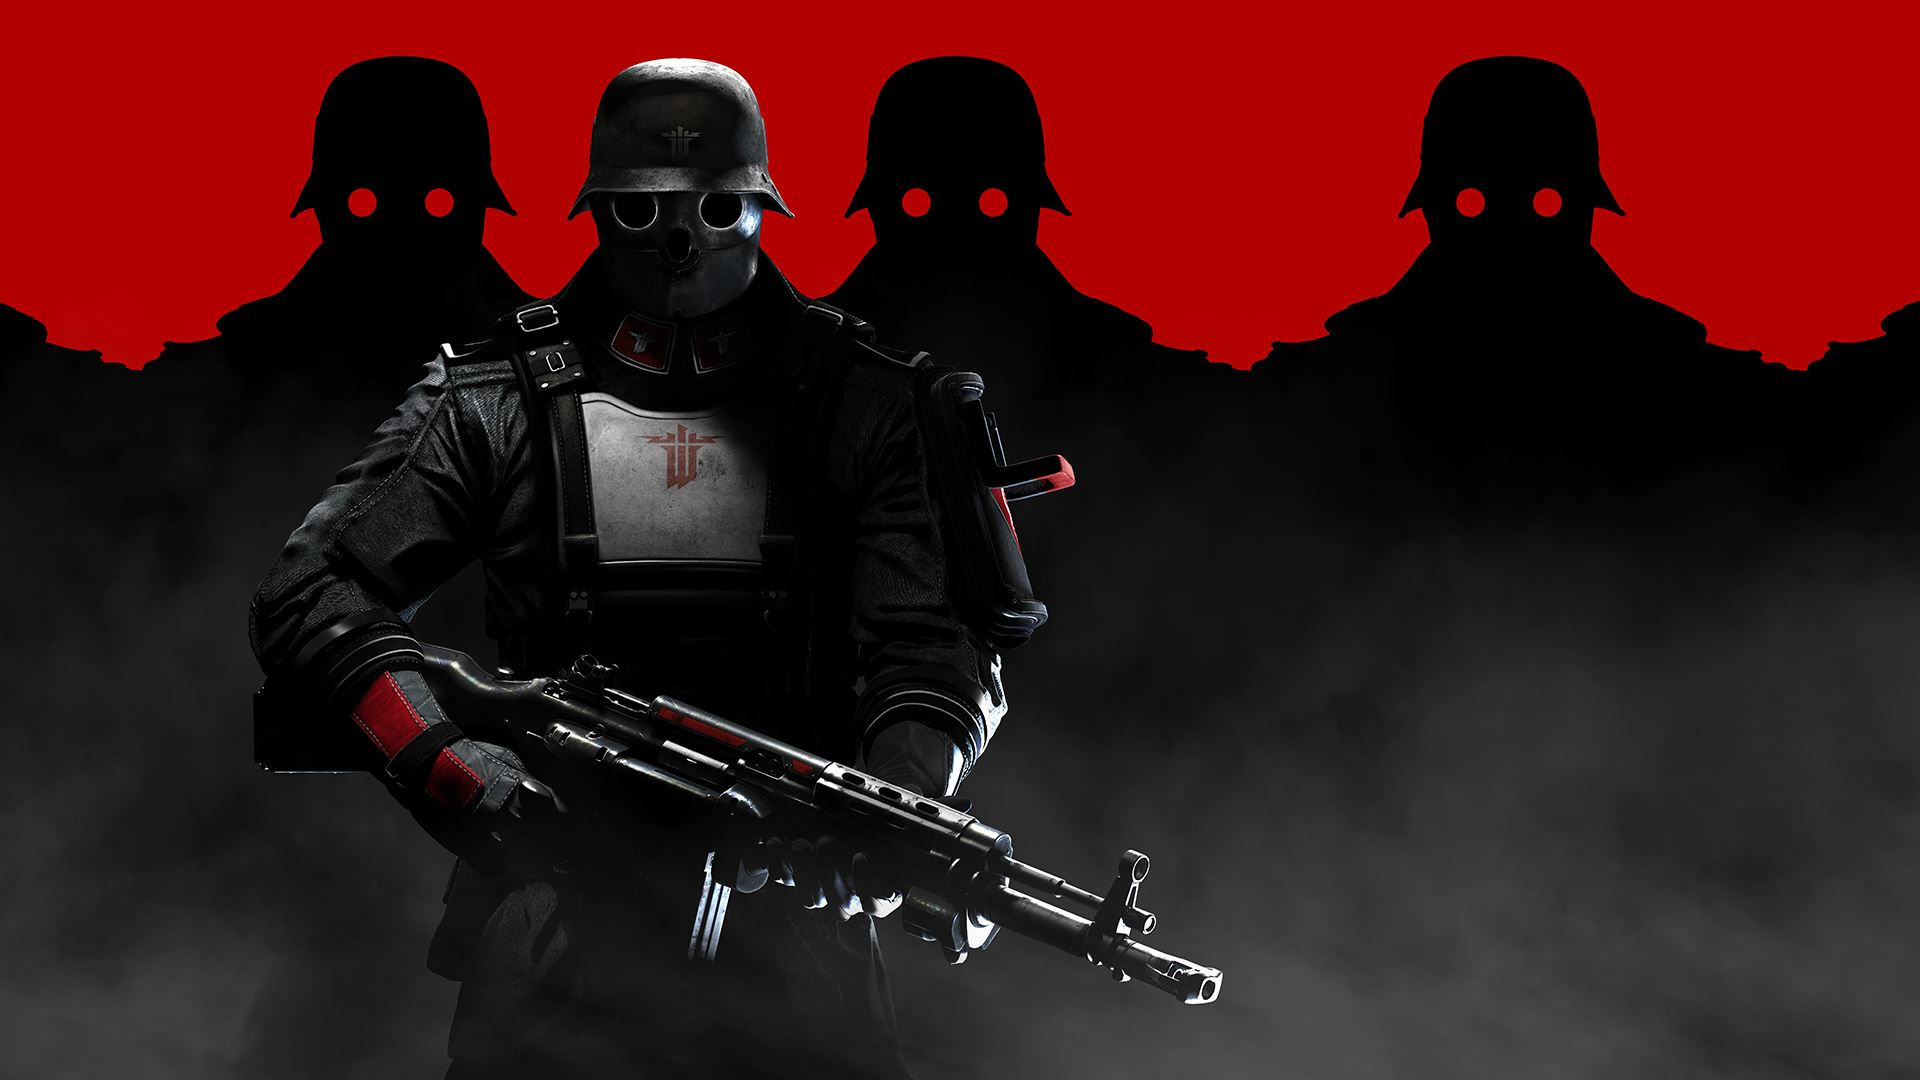 wolfenstein - Overlord Adds Two: Sounds a Bit Like it Was Inspired by Wolfenstein